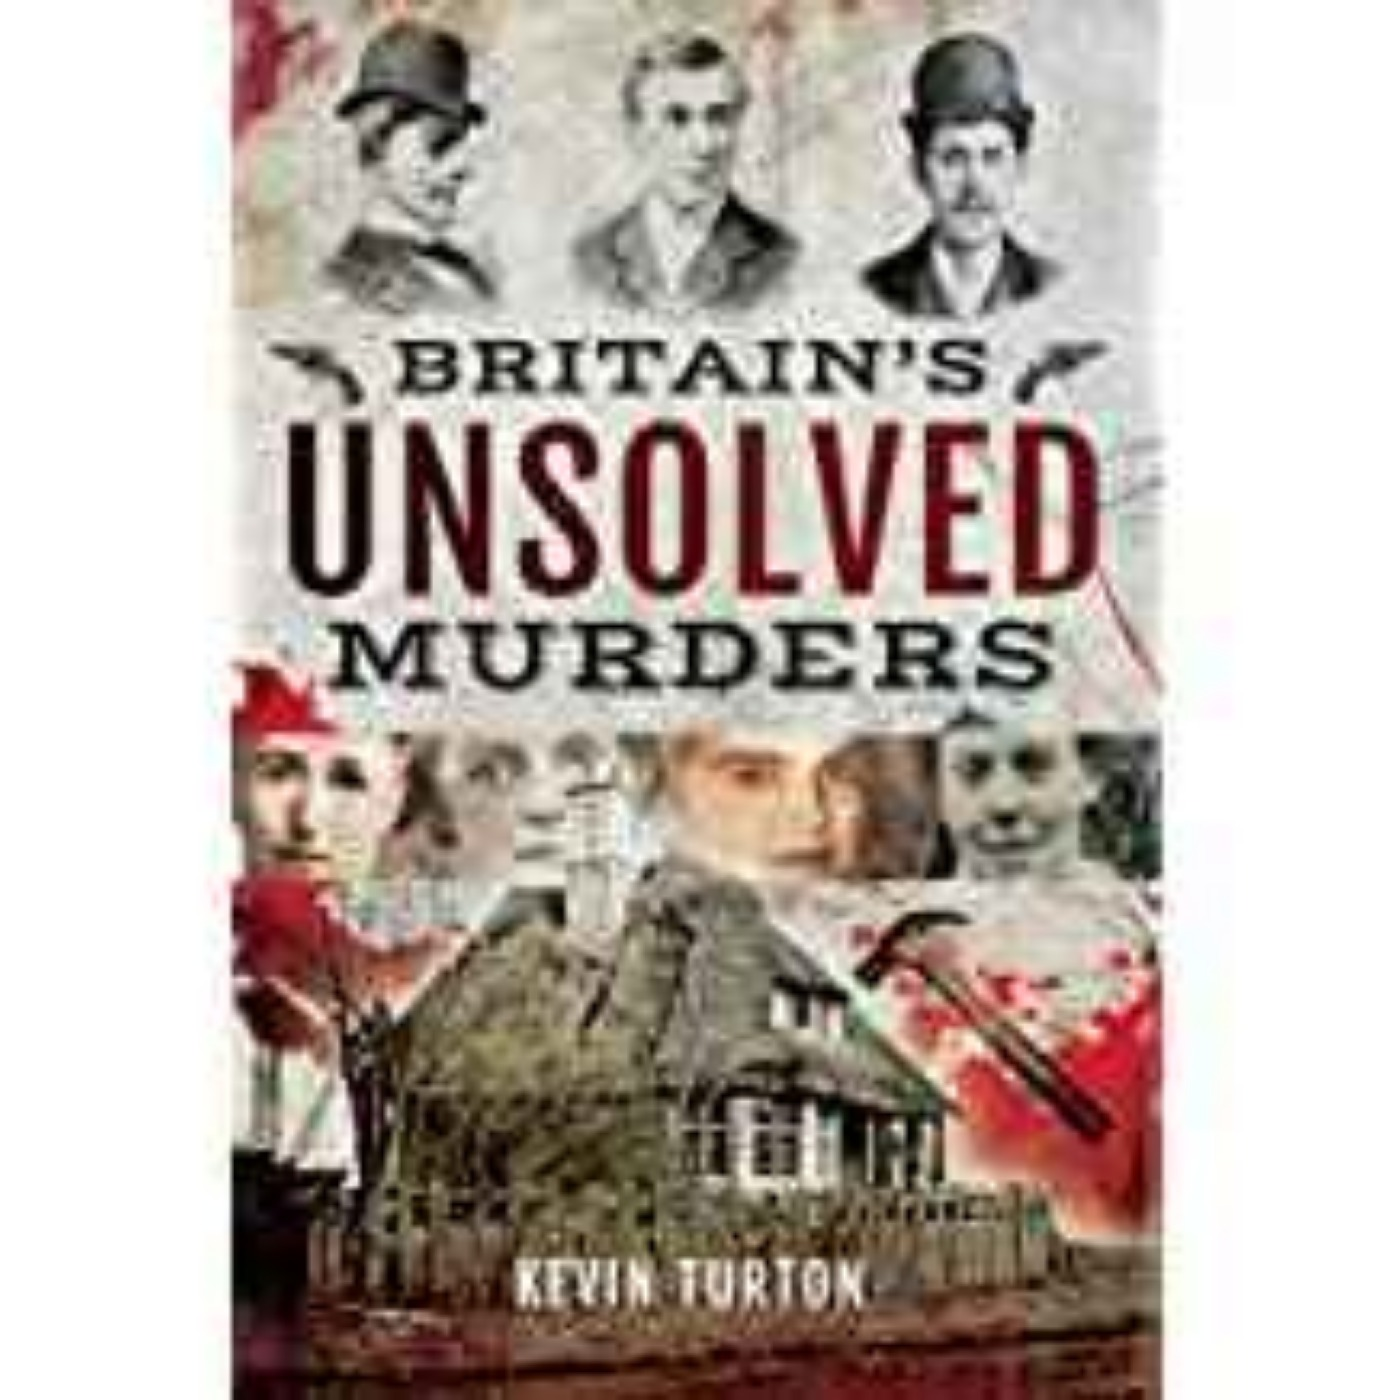 Kevin Turton - Britain's Unsolved Murders